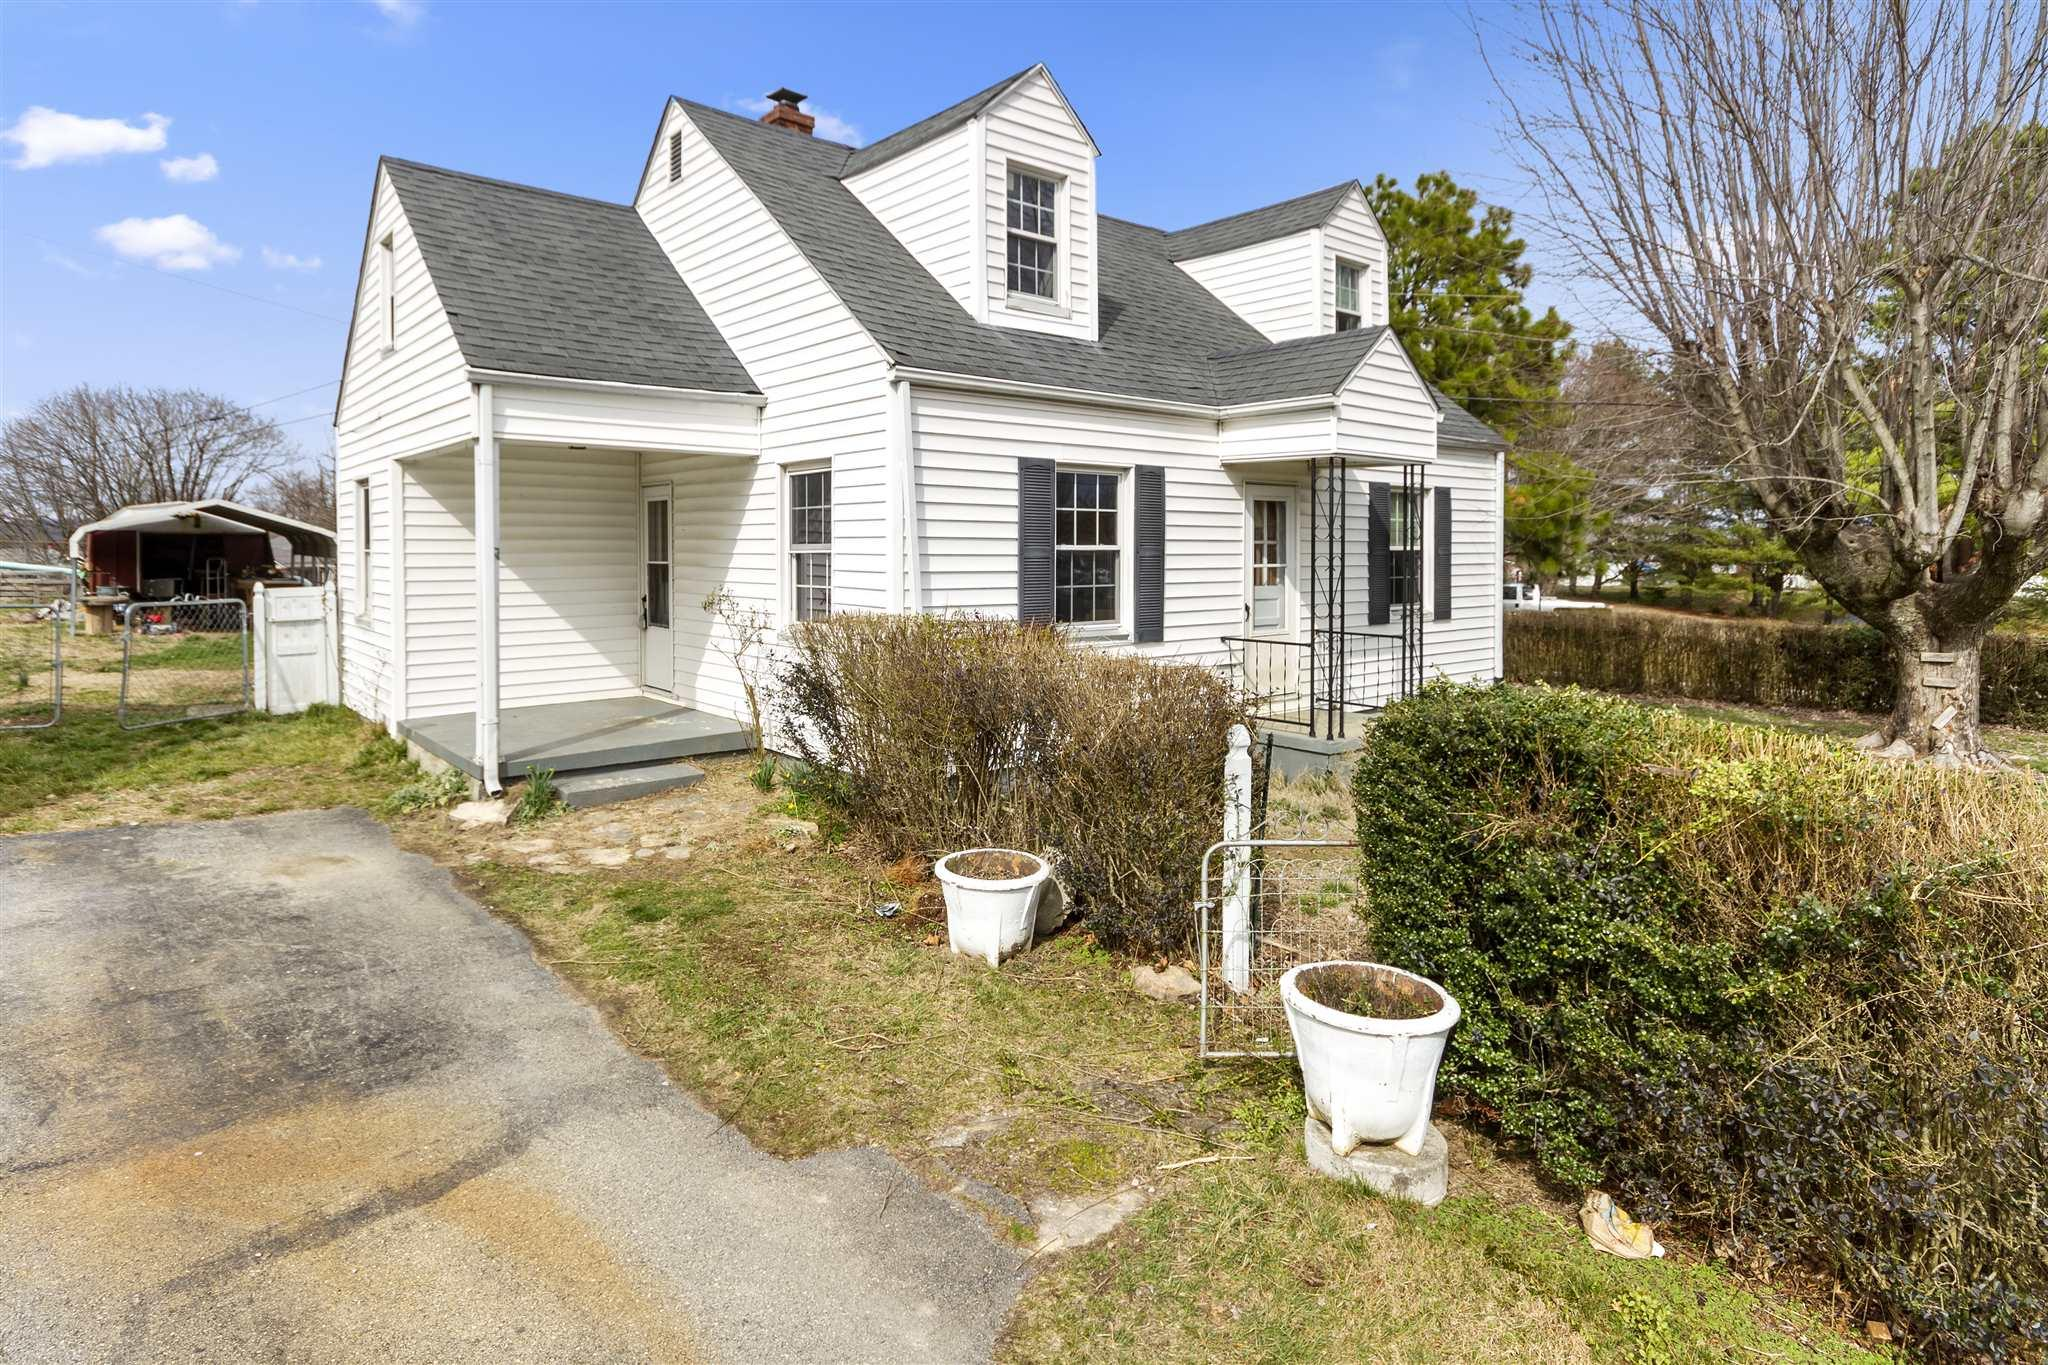 "Hops, Skips & Jumps from Dublin Elementary School. Don't have to be ""taxi Driver"" for growing family & walk to school. NEED 4 BEDROOMS? Come see this Cape Cod home with partial basement. On the main level - Living Room, Dining Room, Utility Room With W&D Hookups,Kitchen w/Range & Ref, 2 Bedrooms & Bath Rm. Upstairs - 2 Bedrms plus Extra closet off BR #3 Upstairs - 7.92 x 7.08. Enjoy the Paved Driveway & the level fenced back yard with storage bldg & carport. Outdoor table w/chairs & Grill conveys.Updated w/Ceramic Tile in Bathroom, Kitchen & Laundry. Heat Pump for Main & Upper levels. NEW Hot Water Heater - 2019. Access to Attic in upstairs Bedrm Closet. Plumbing for propane fireplace in Living Room.  Updated W/Vinyl Tilt Windows. Walk to Dublin Elementary School & Dublin Lions Recreation Field & Walking Trail in minutes. Only 4 Minutes & 2.3 Miles to I-81 & Wal-Mart. Original Hardwood Floors ready for your furniture. Happiness is tree-lined street & neighbors greeted by first name."